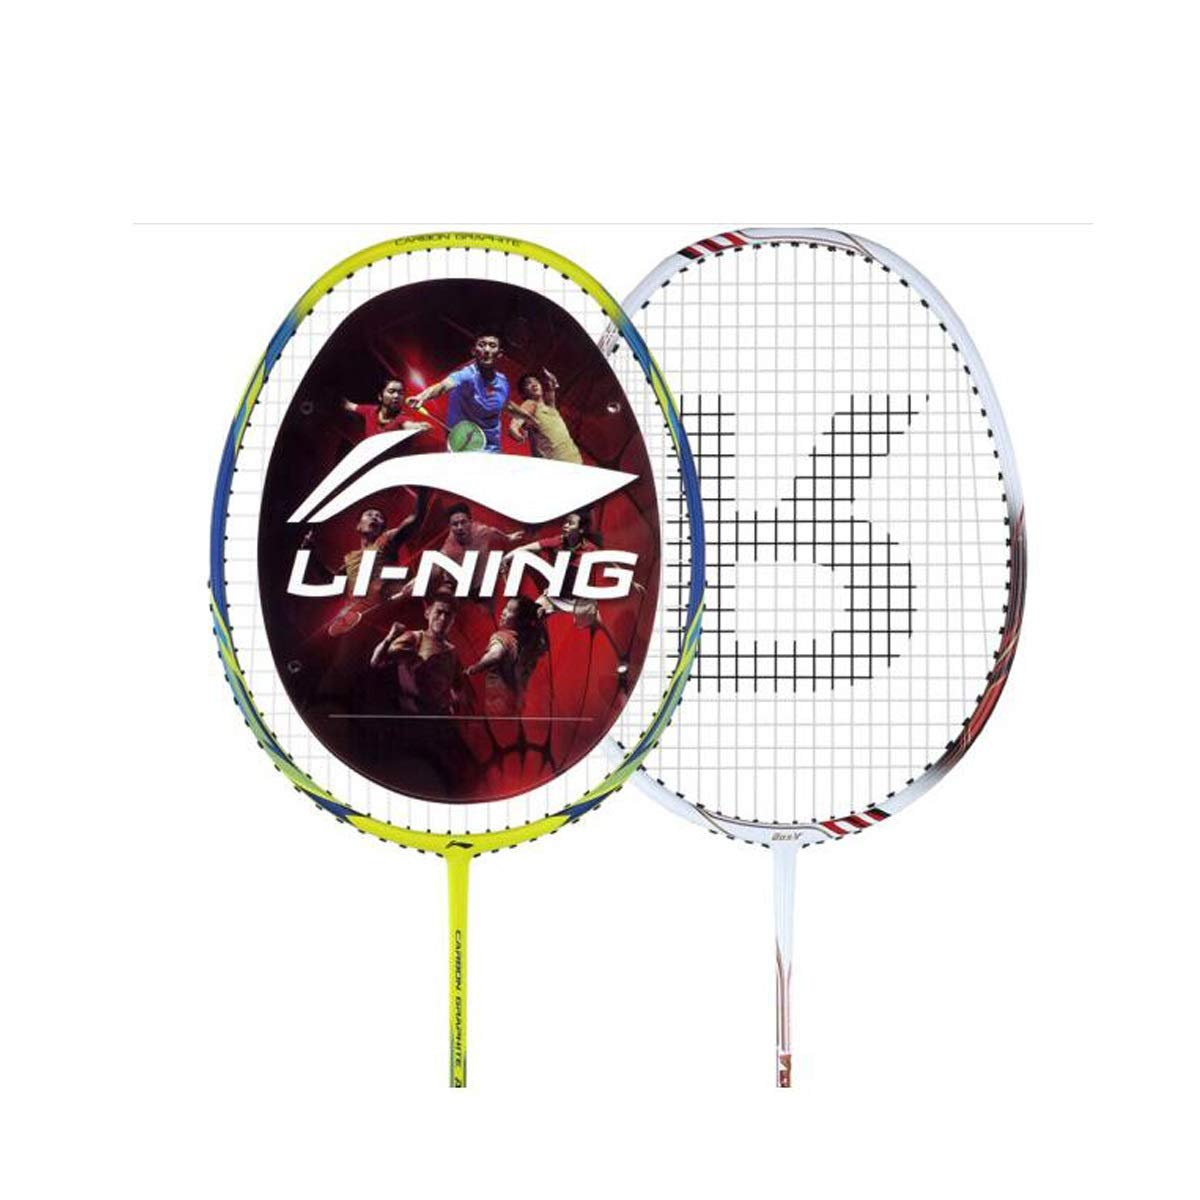 Tongboshi Full Carbon Badminton Racket, On The Beat, 2 Double Shot Set Ultra Light Beginner, Competition, Training, White, Yellow, White + Yellow (has Threaded) Badminton Racket, (Color : Yellow) by Tongboshi (Image #2)